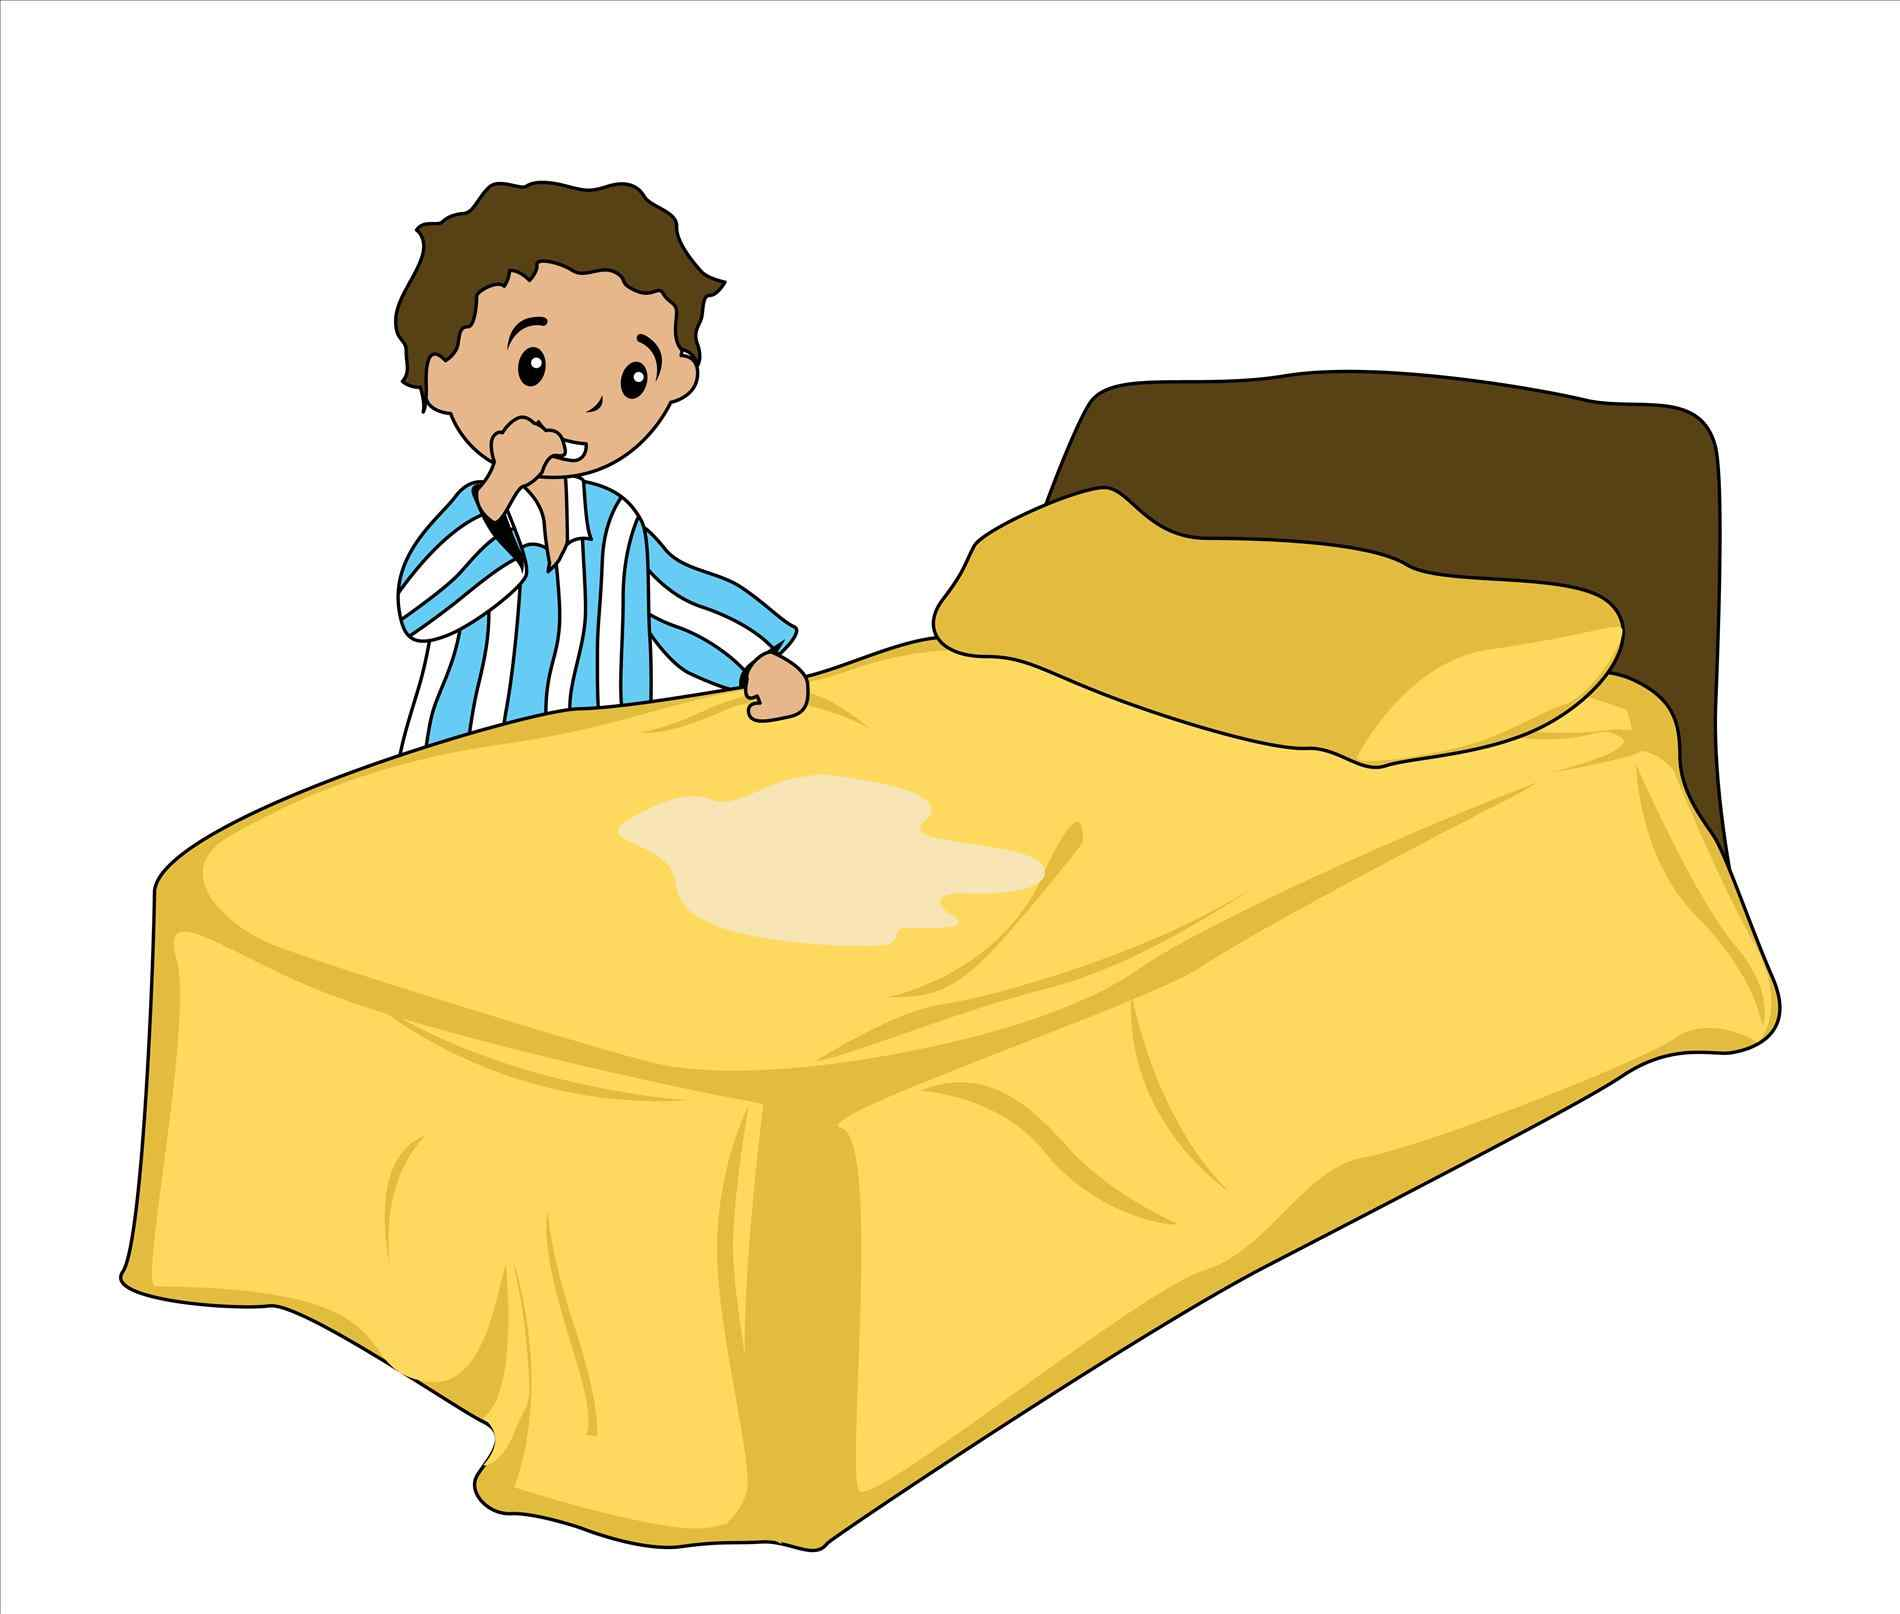 Make Bed Clipart Free Download Clip Art.